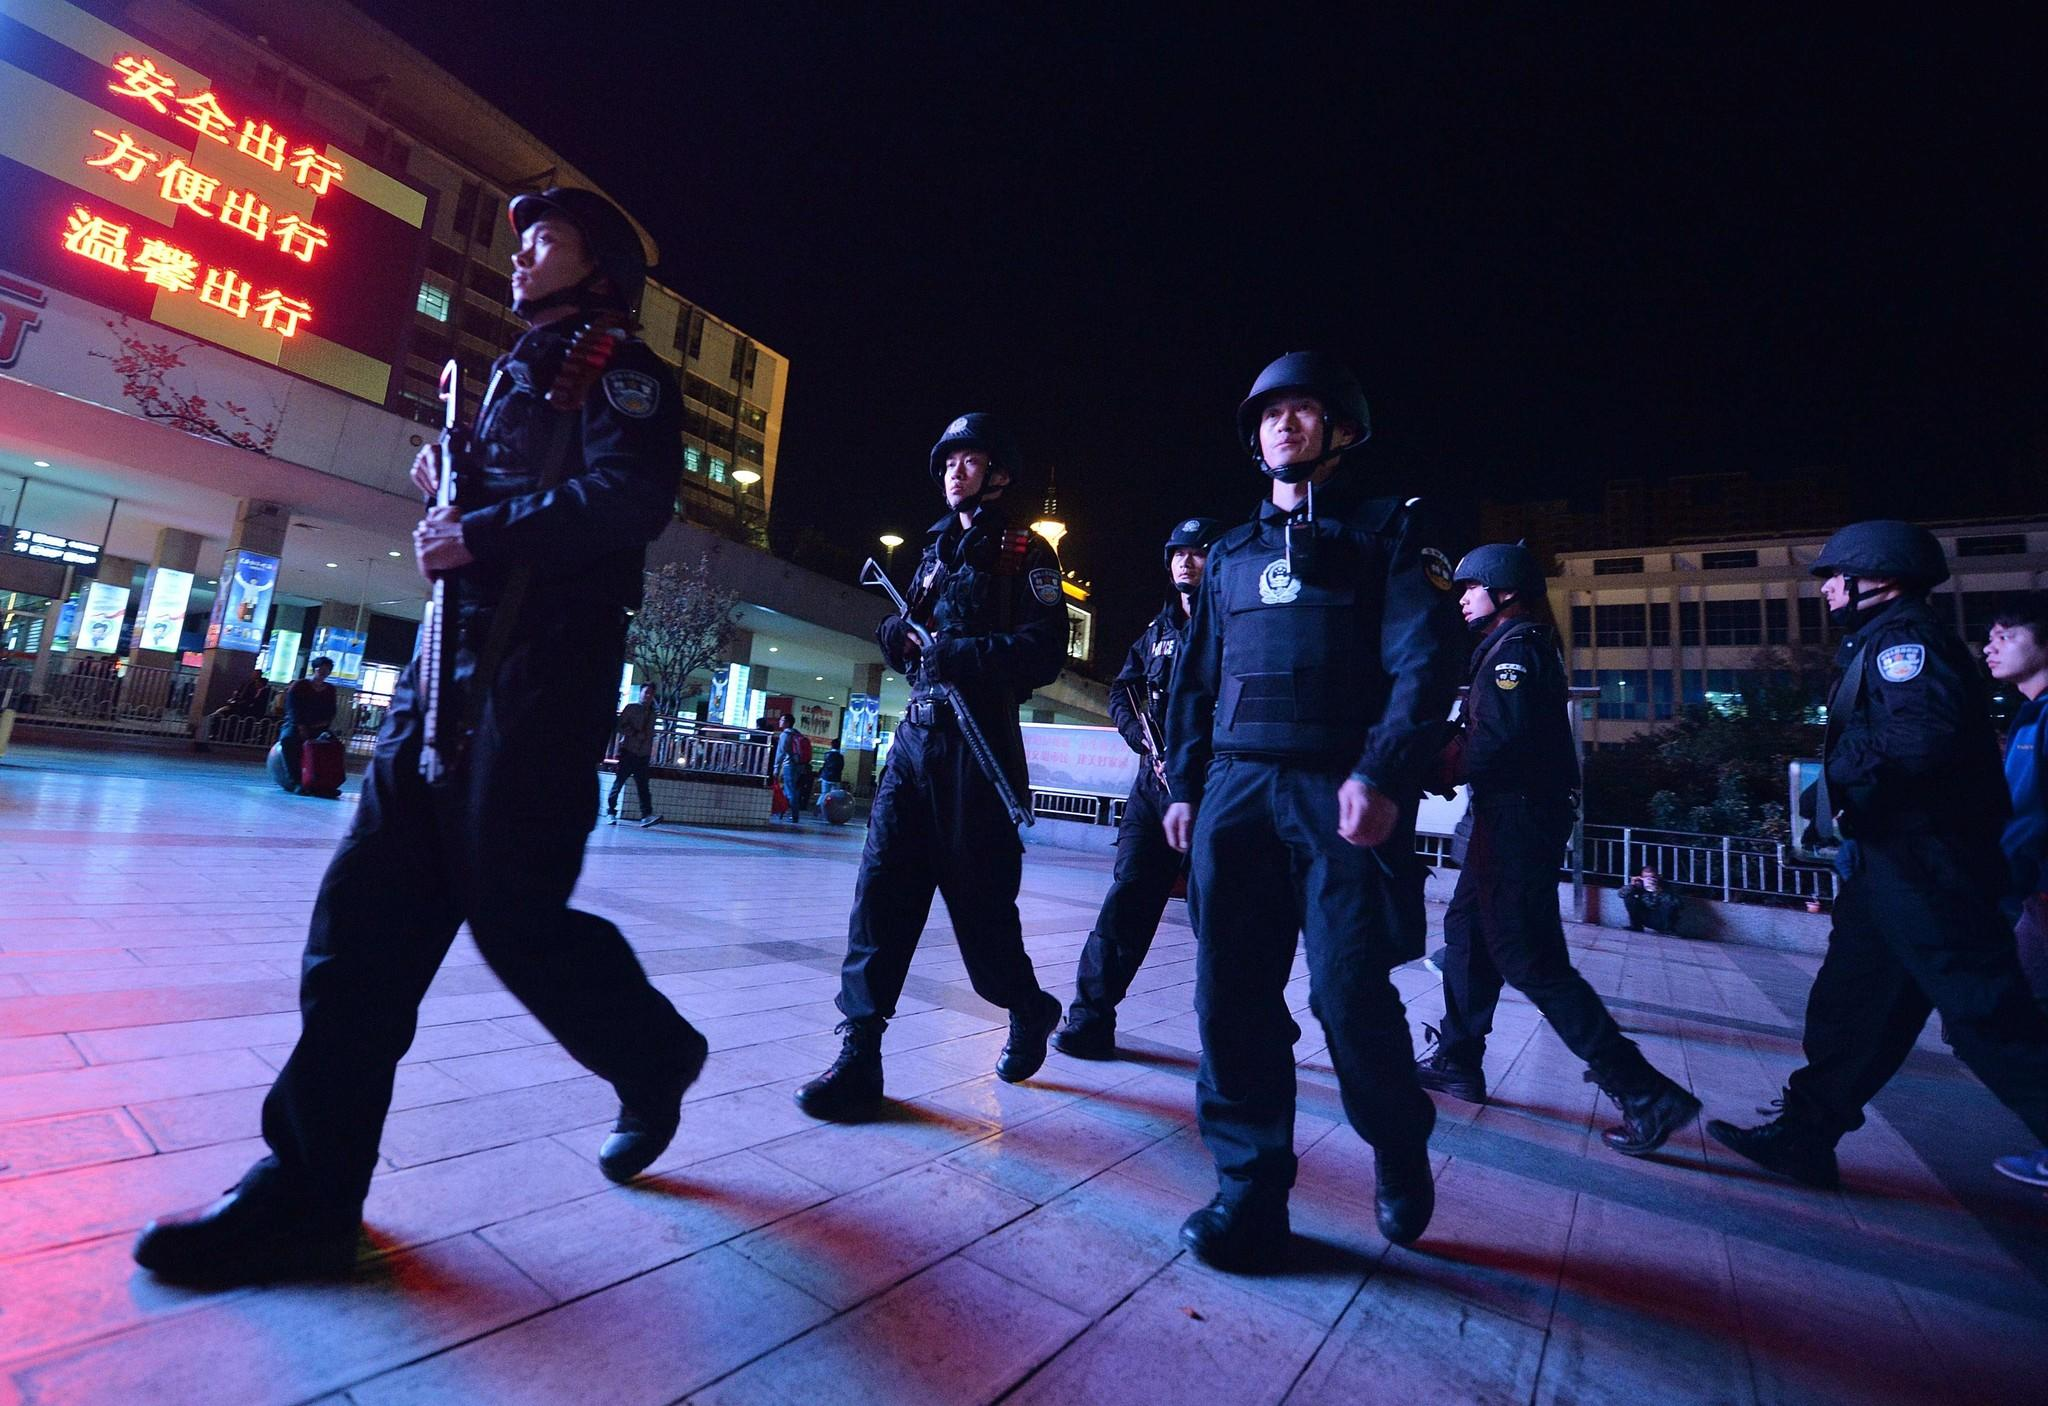 Armed police patrol the scene of a knife attack at the main train station in Kunming, China, in Yunnan Province on Sunday.